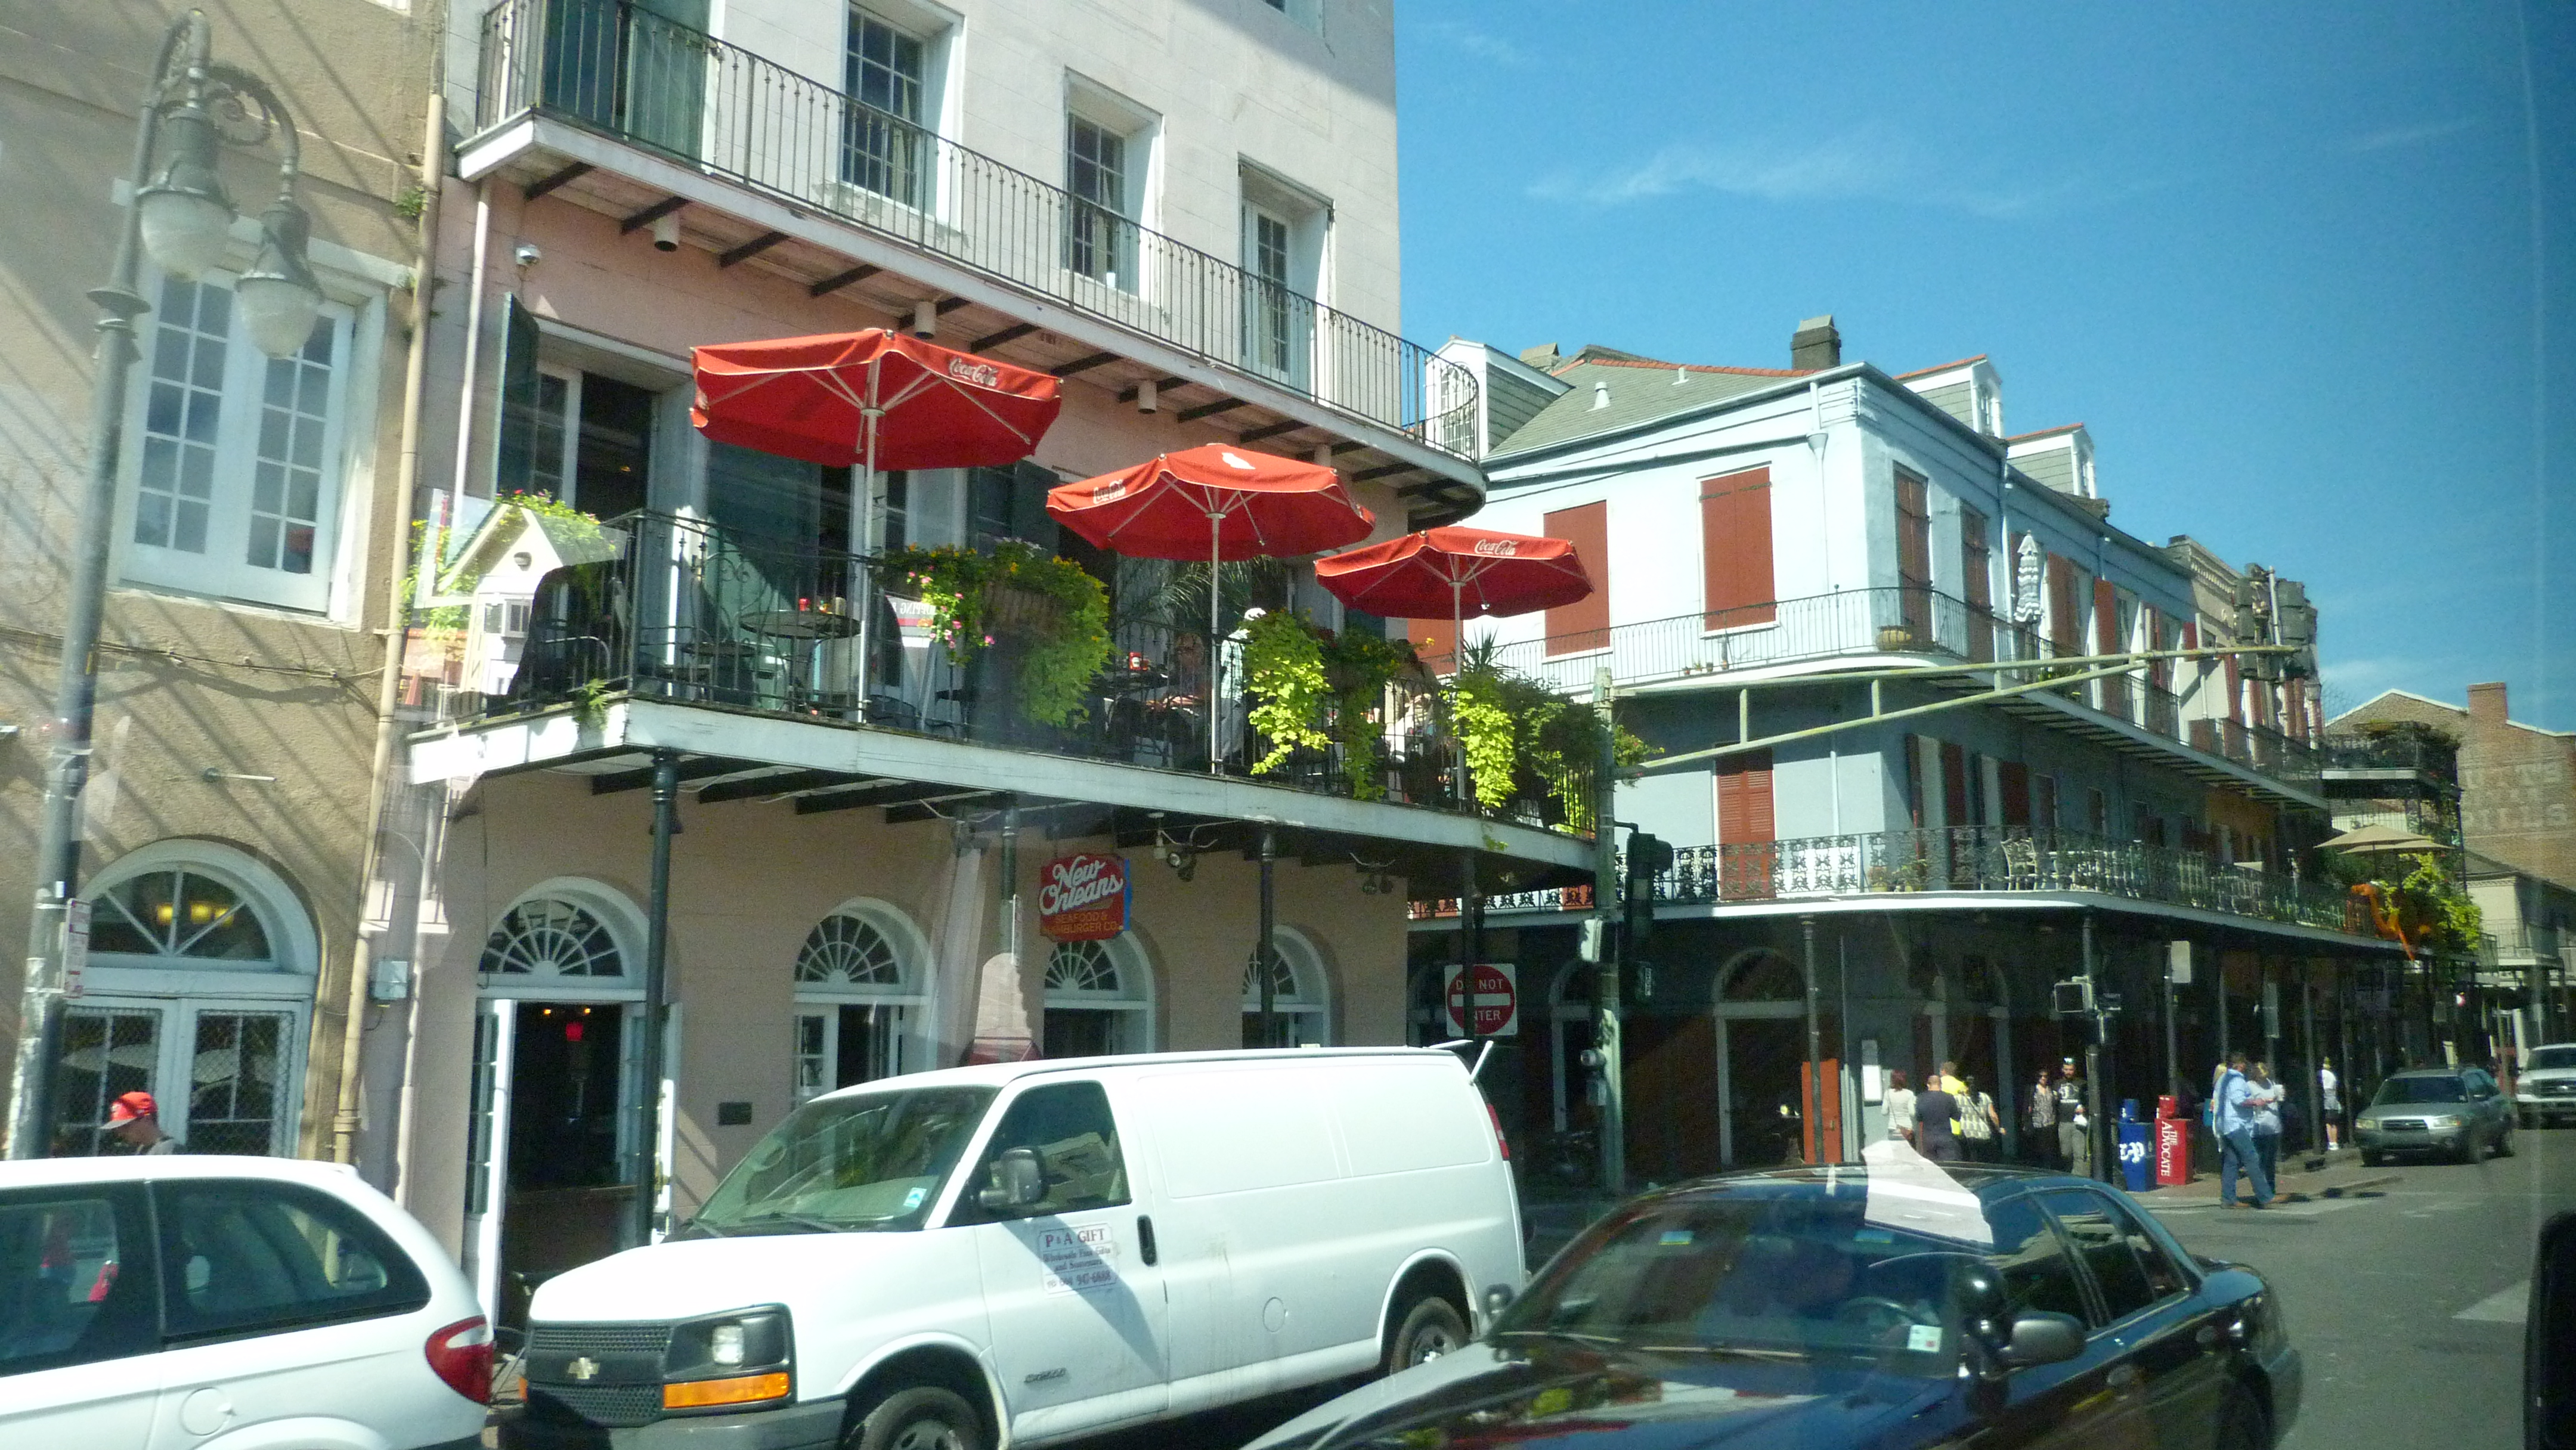 New Orleans Music History And Architecture Mind Traveler